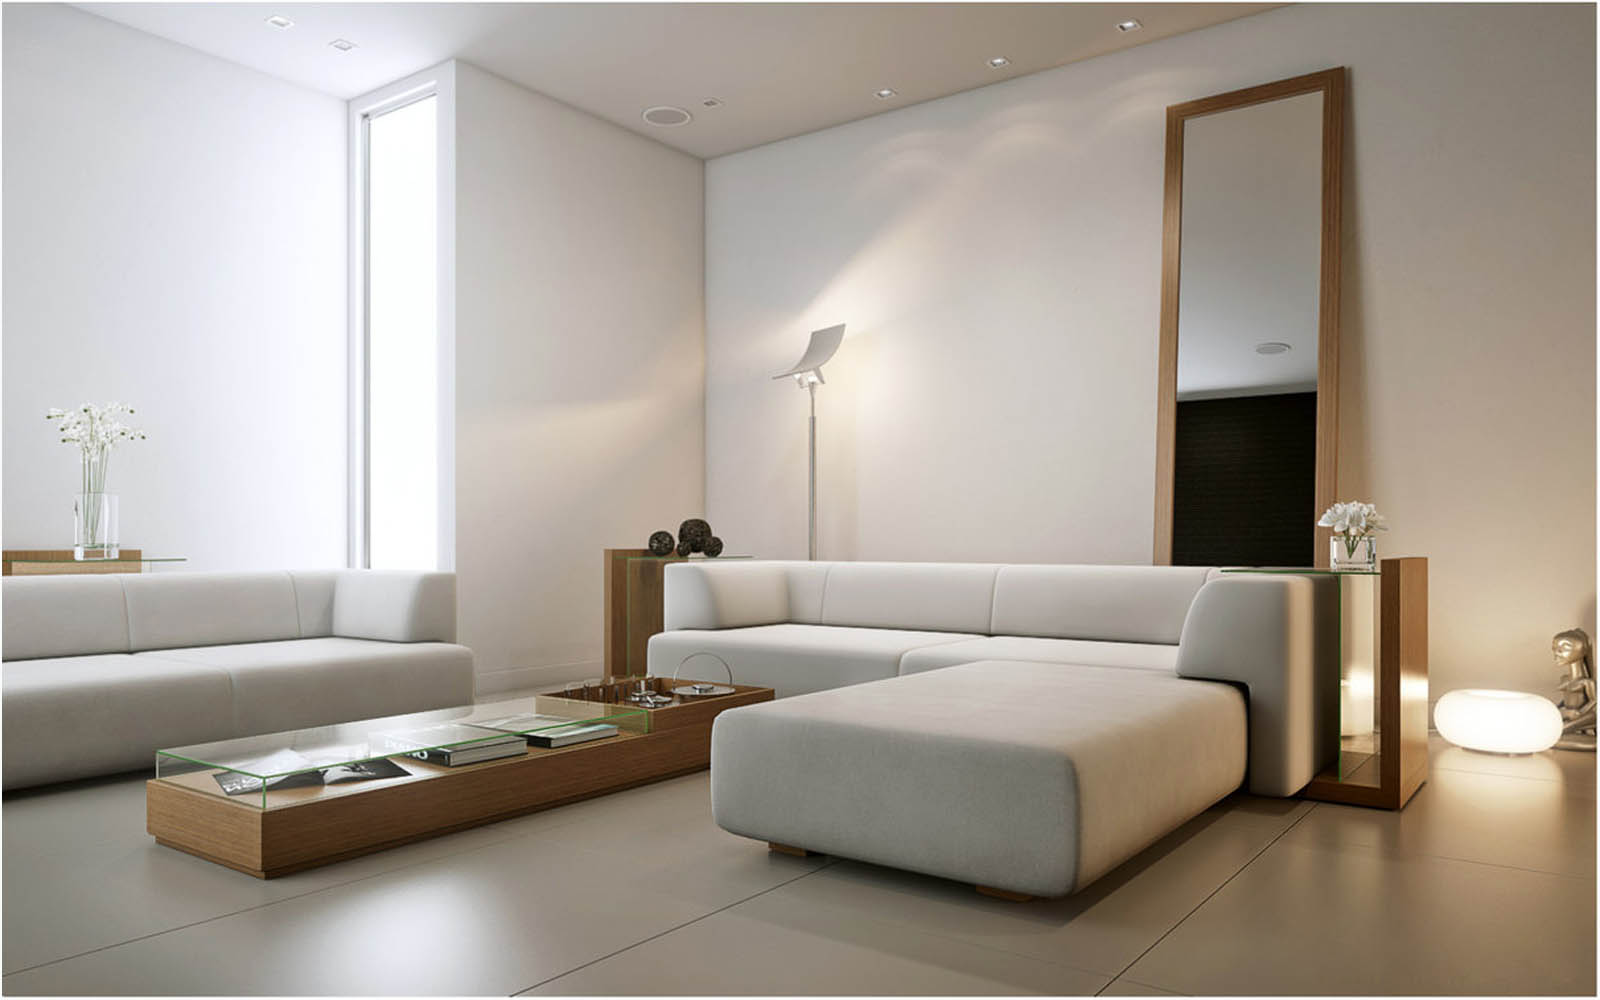 Room Background Wallpaper: Modern Living Room Paos